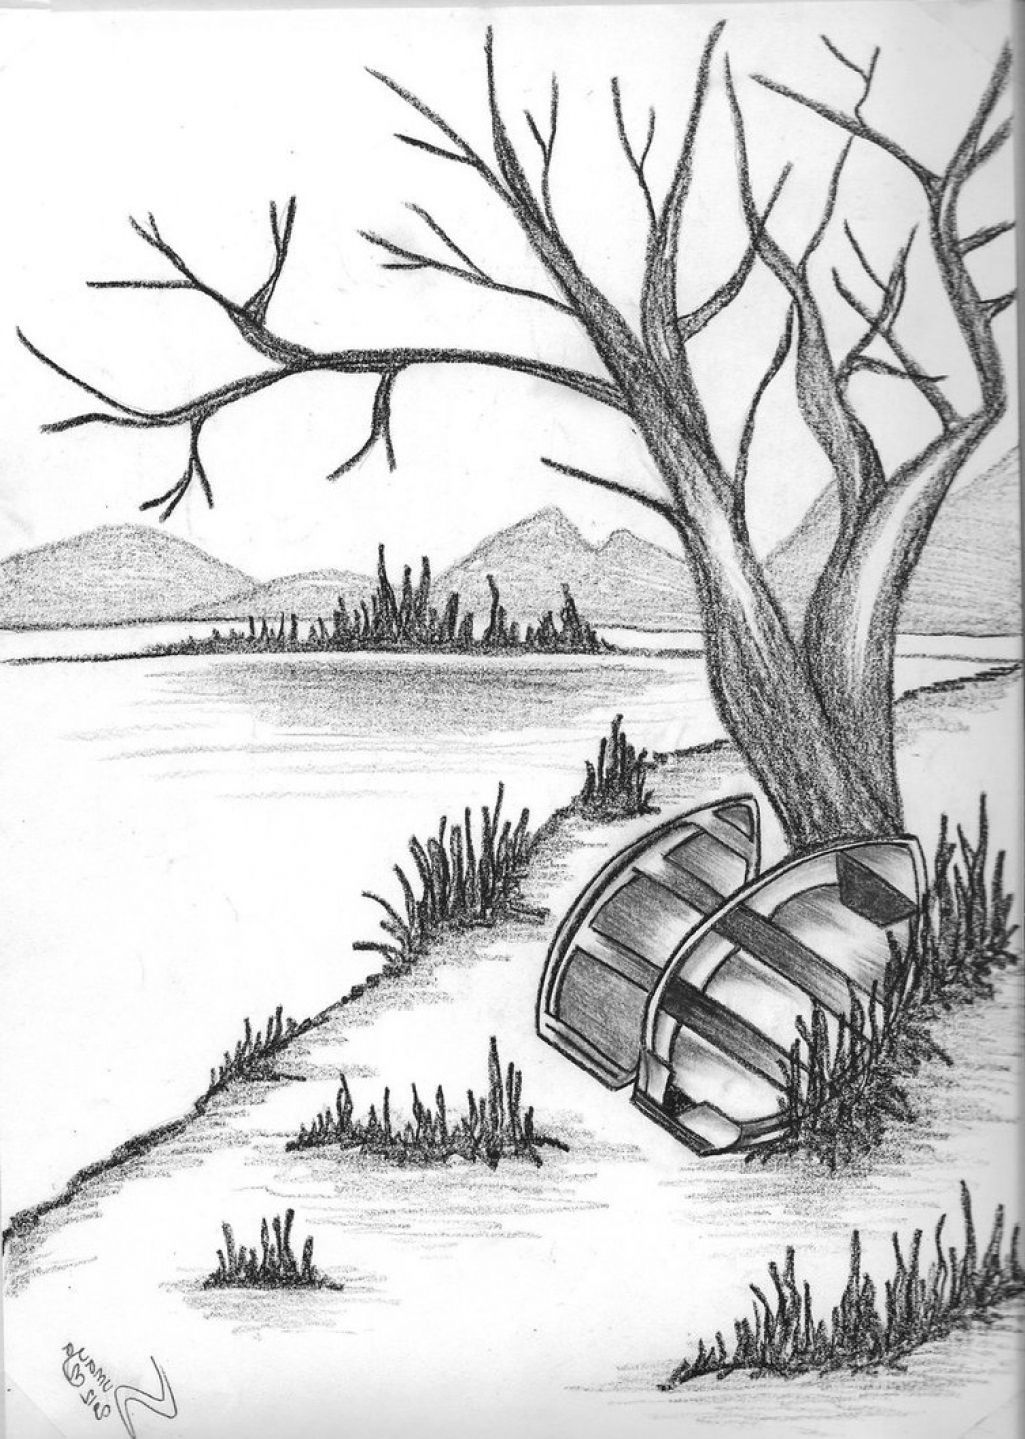 Pencil drawing of natural scenery simple pencil drawings nature pictures of drawing sketch pencil easy pencil